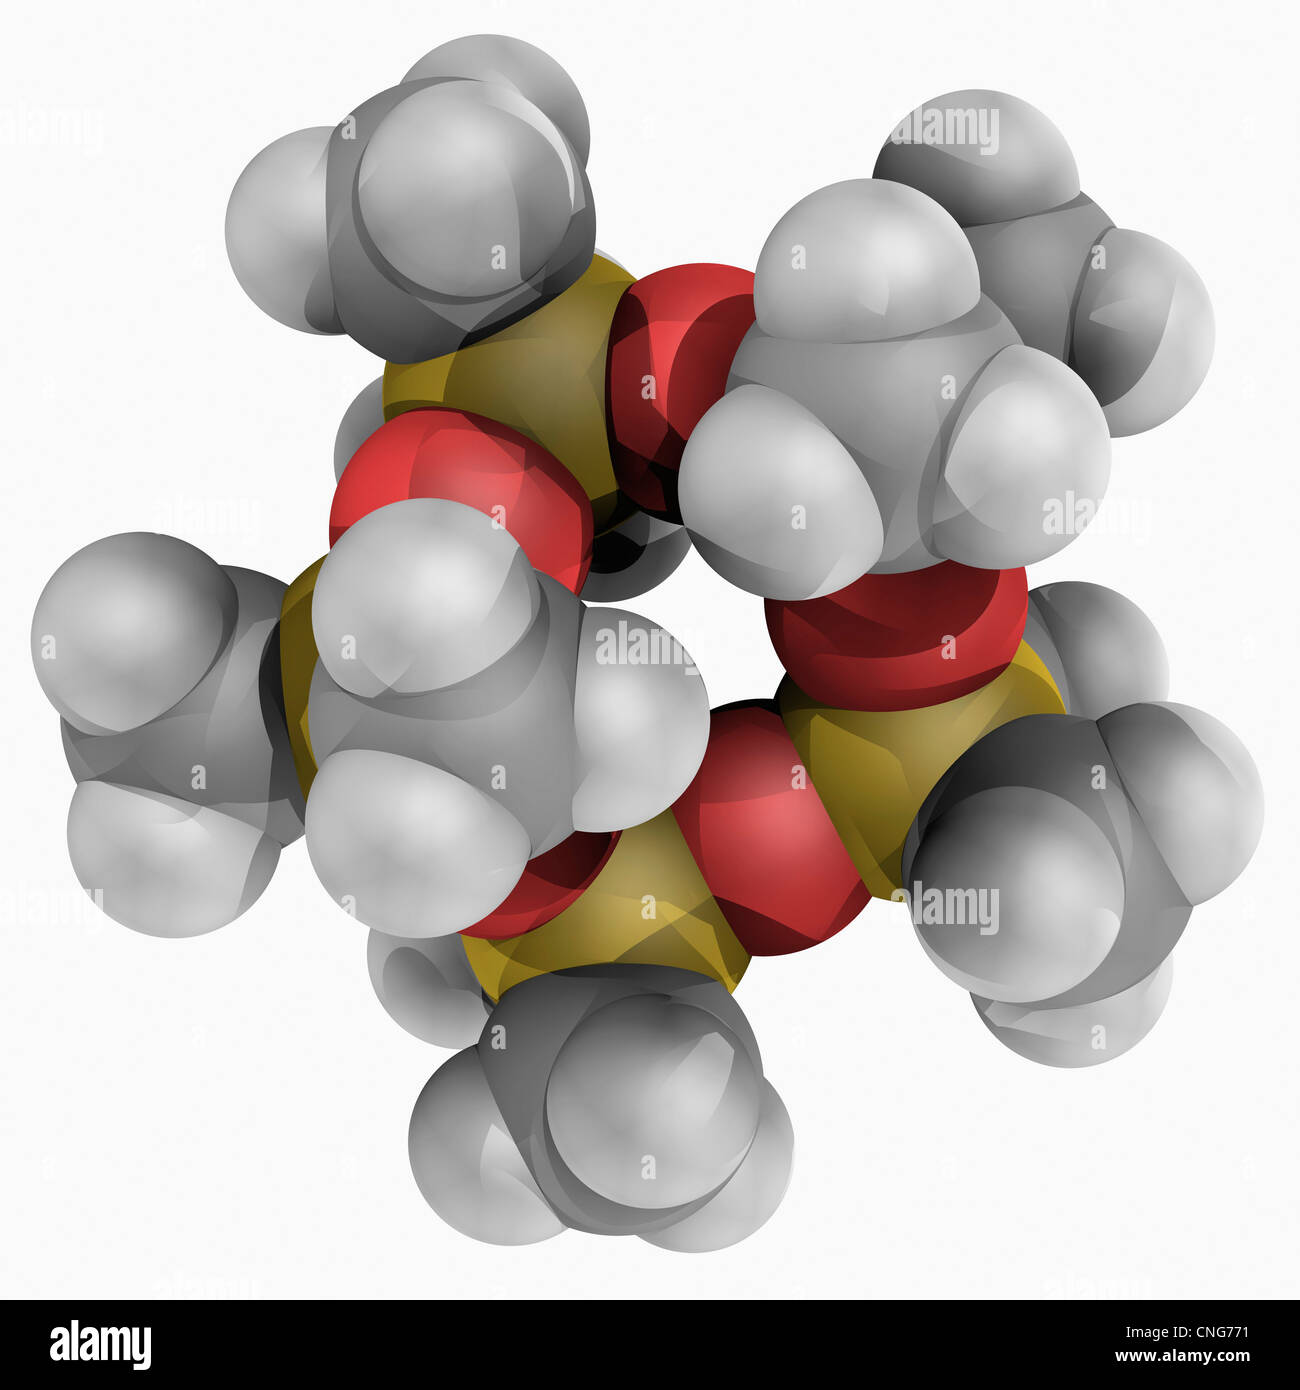 Molécula Decamethylcyclopentasiloxane Imagen De Stock